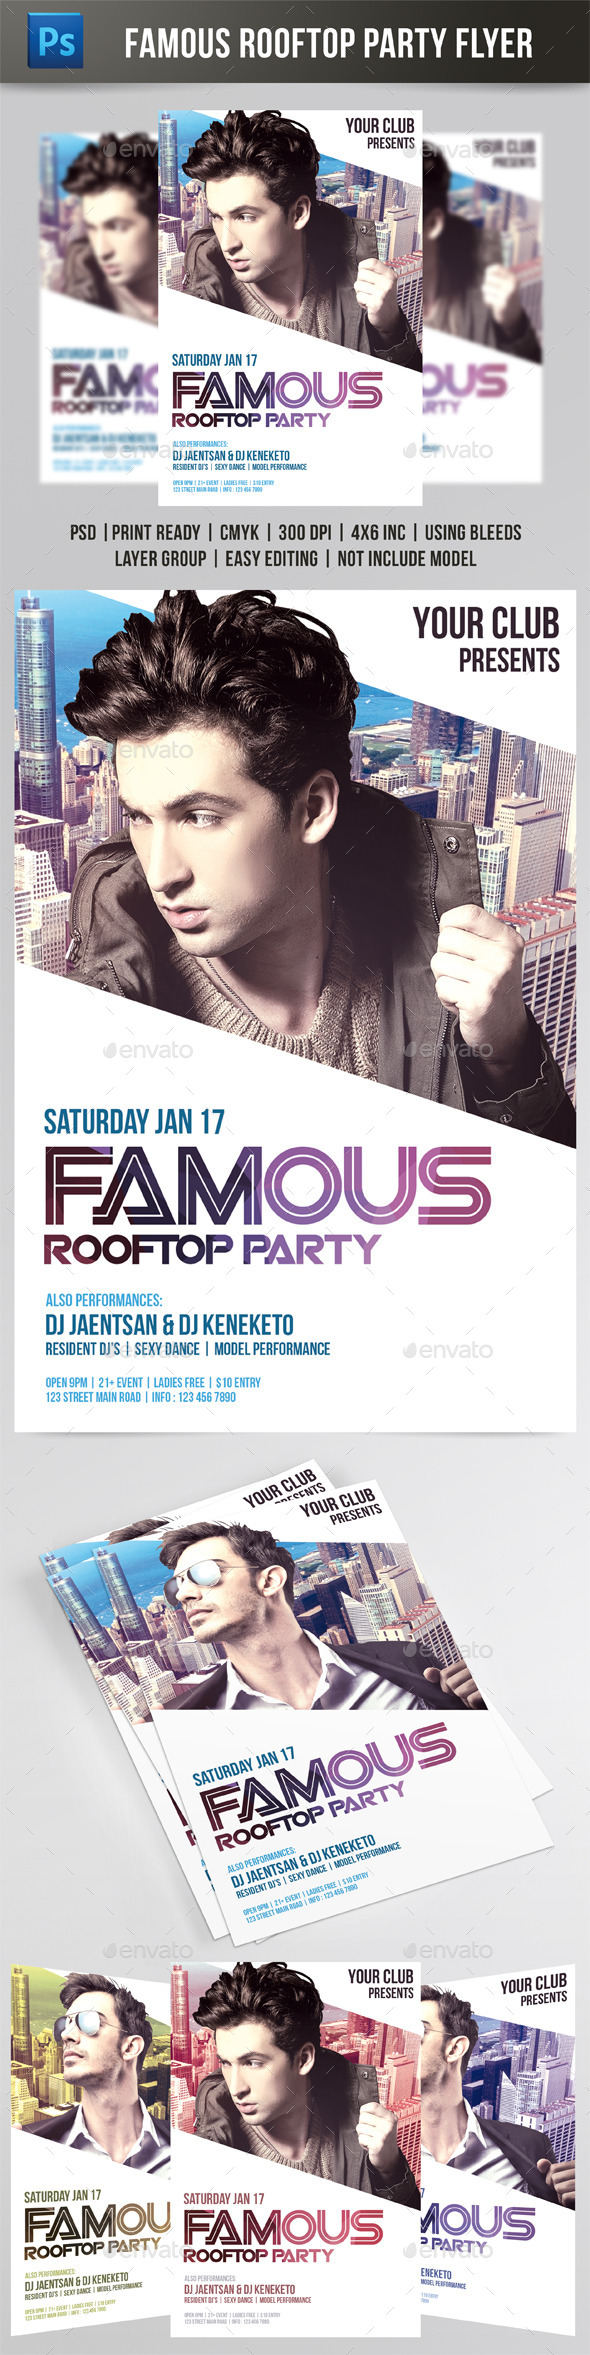 Famous Rooftop Party Flyer - Events Flyers